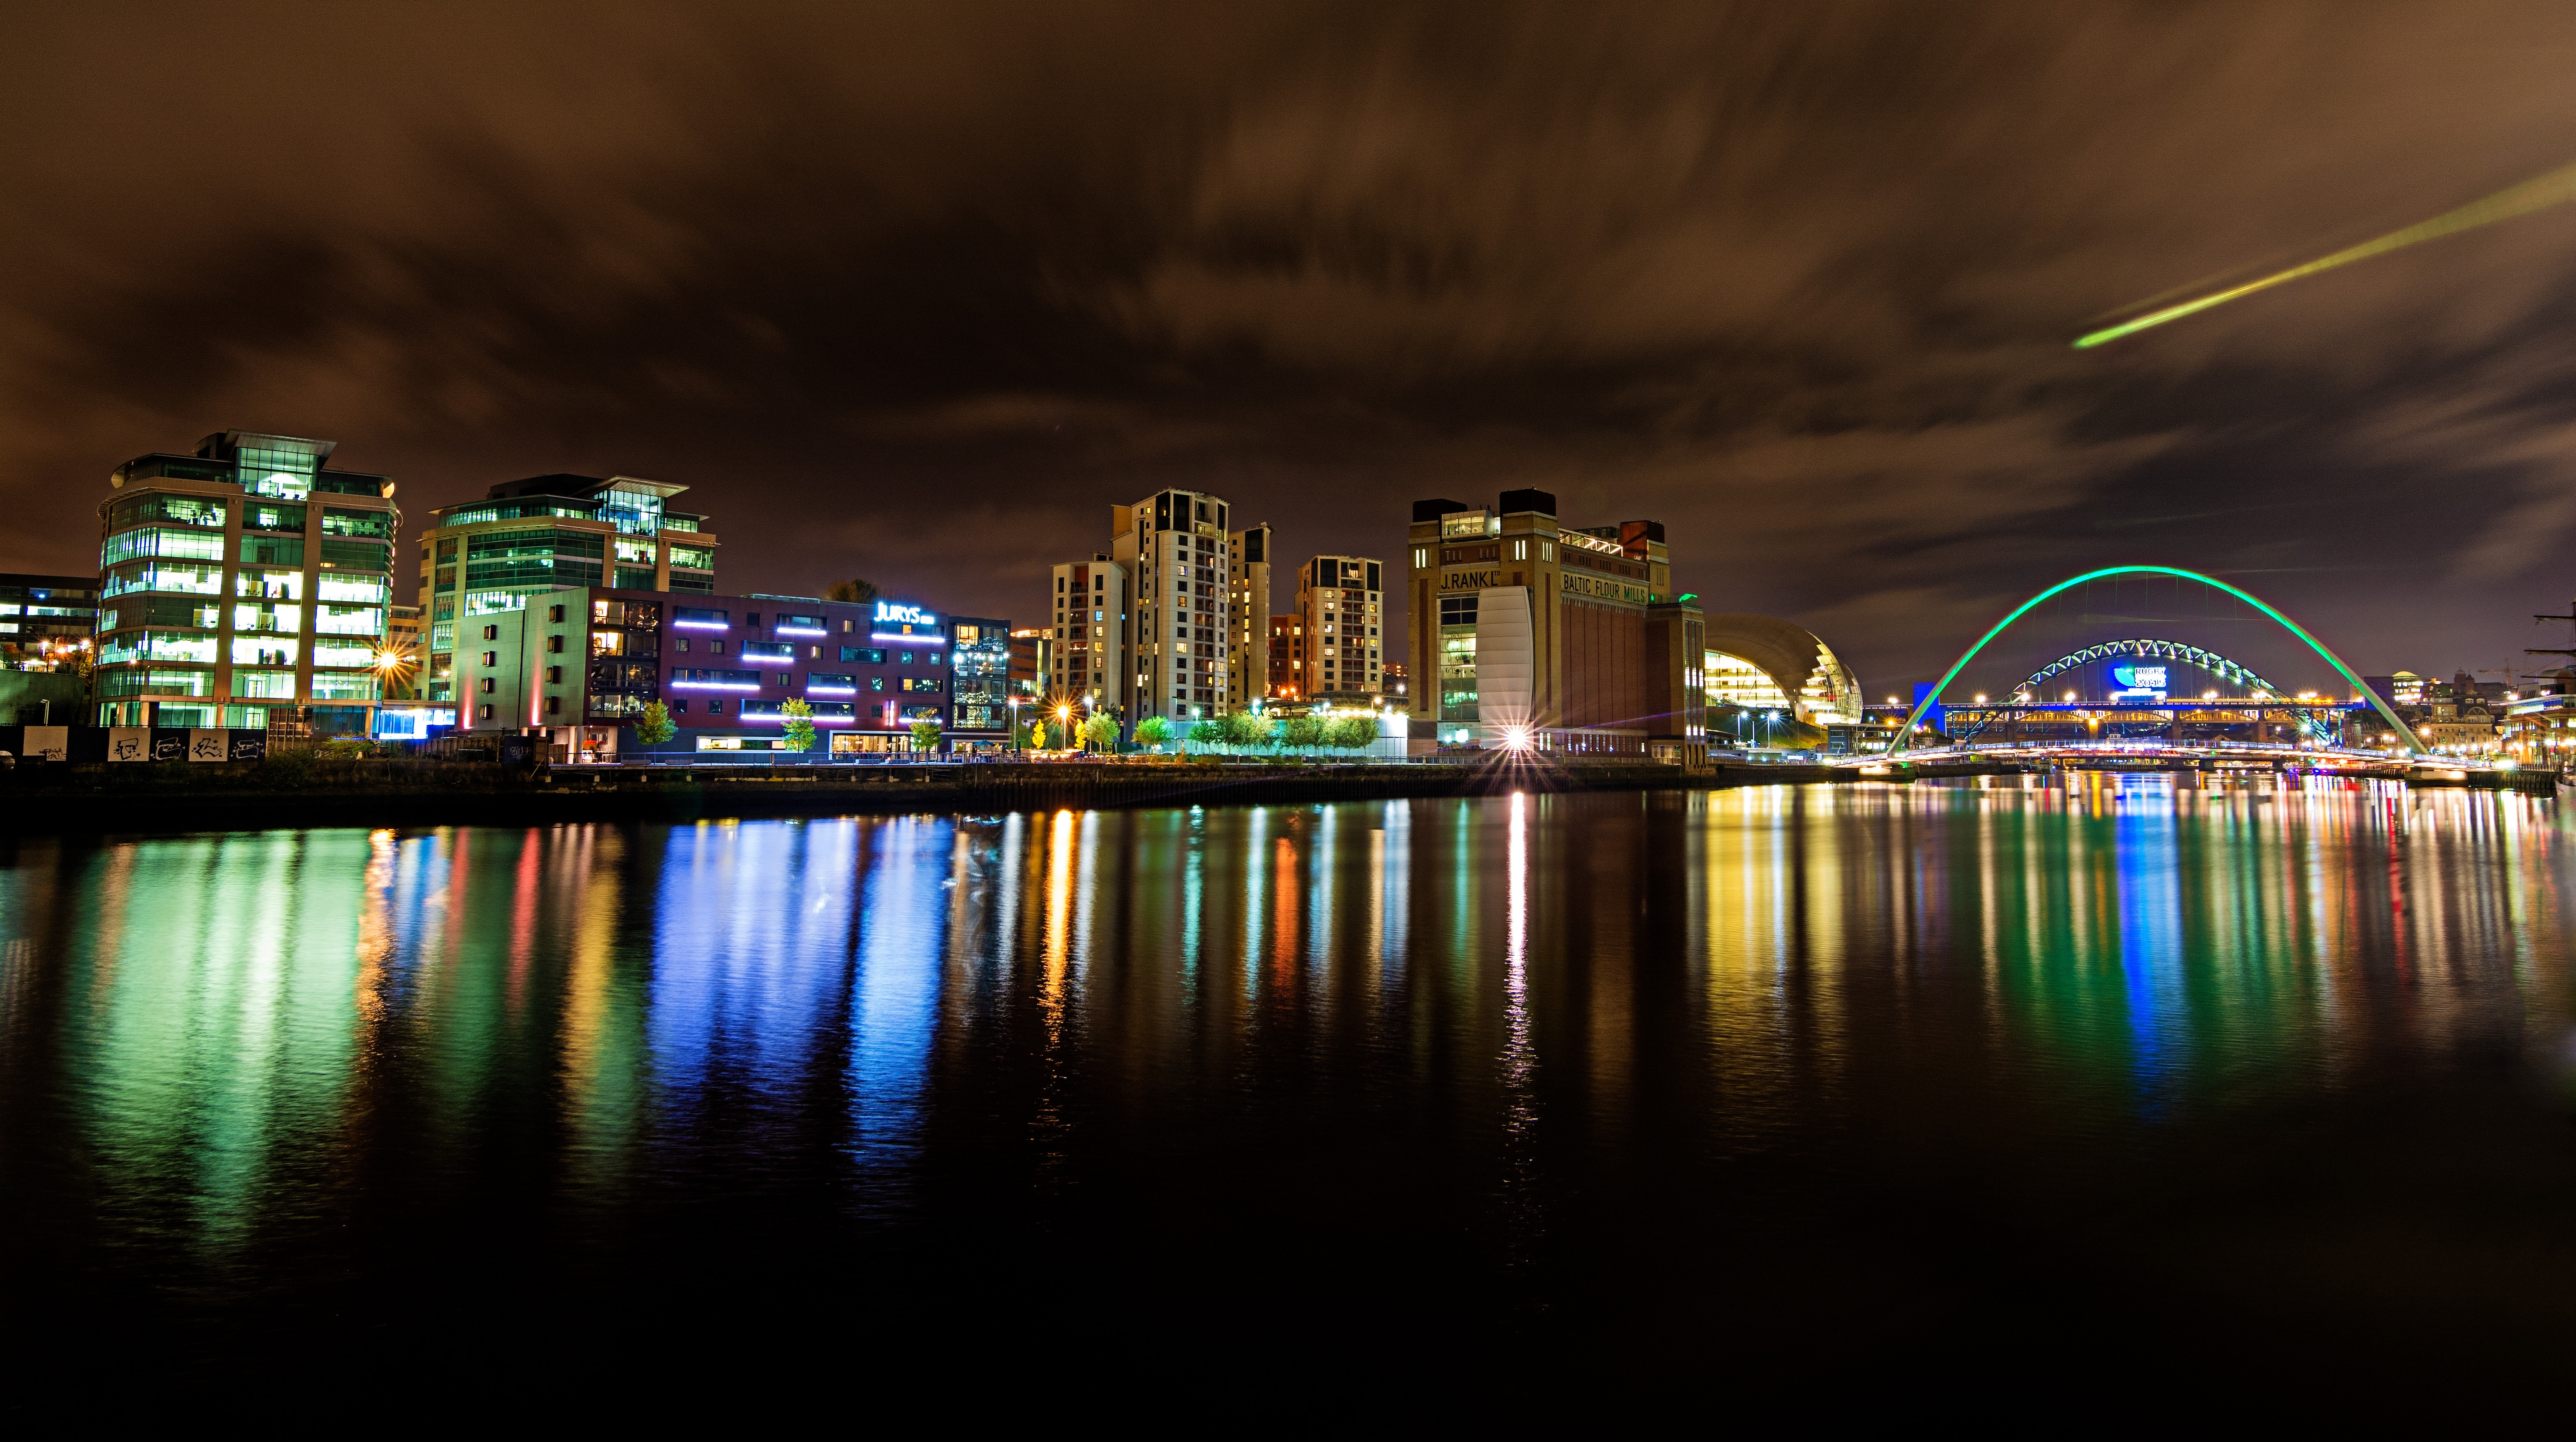 Cityscape at nighttime reflecting on body of water photo